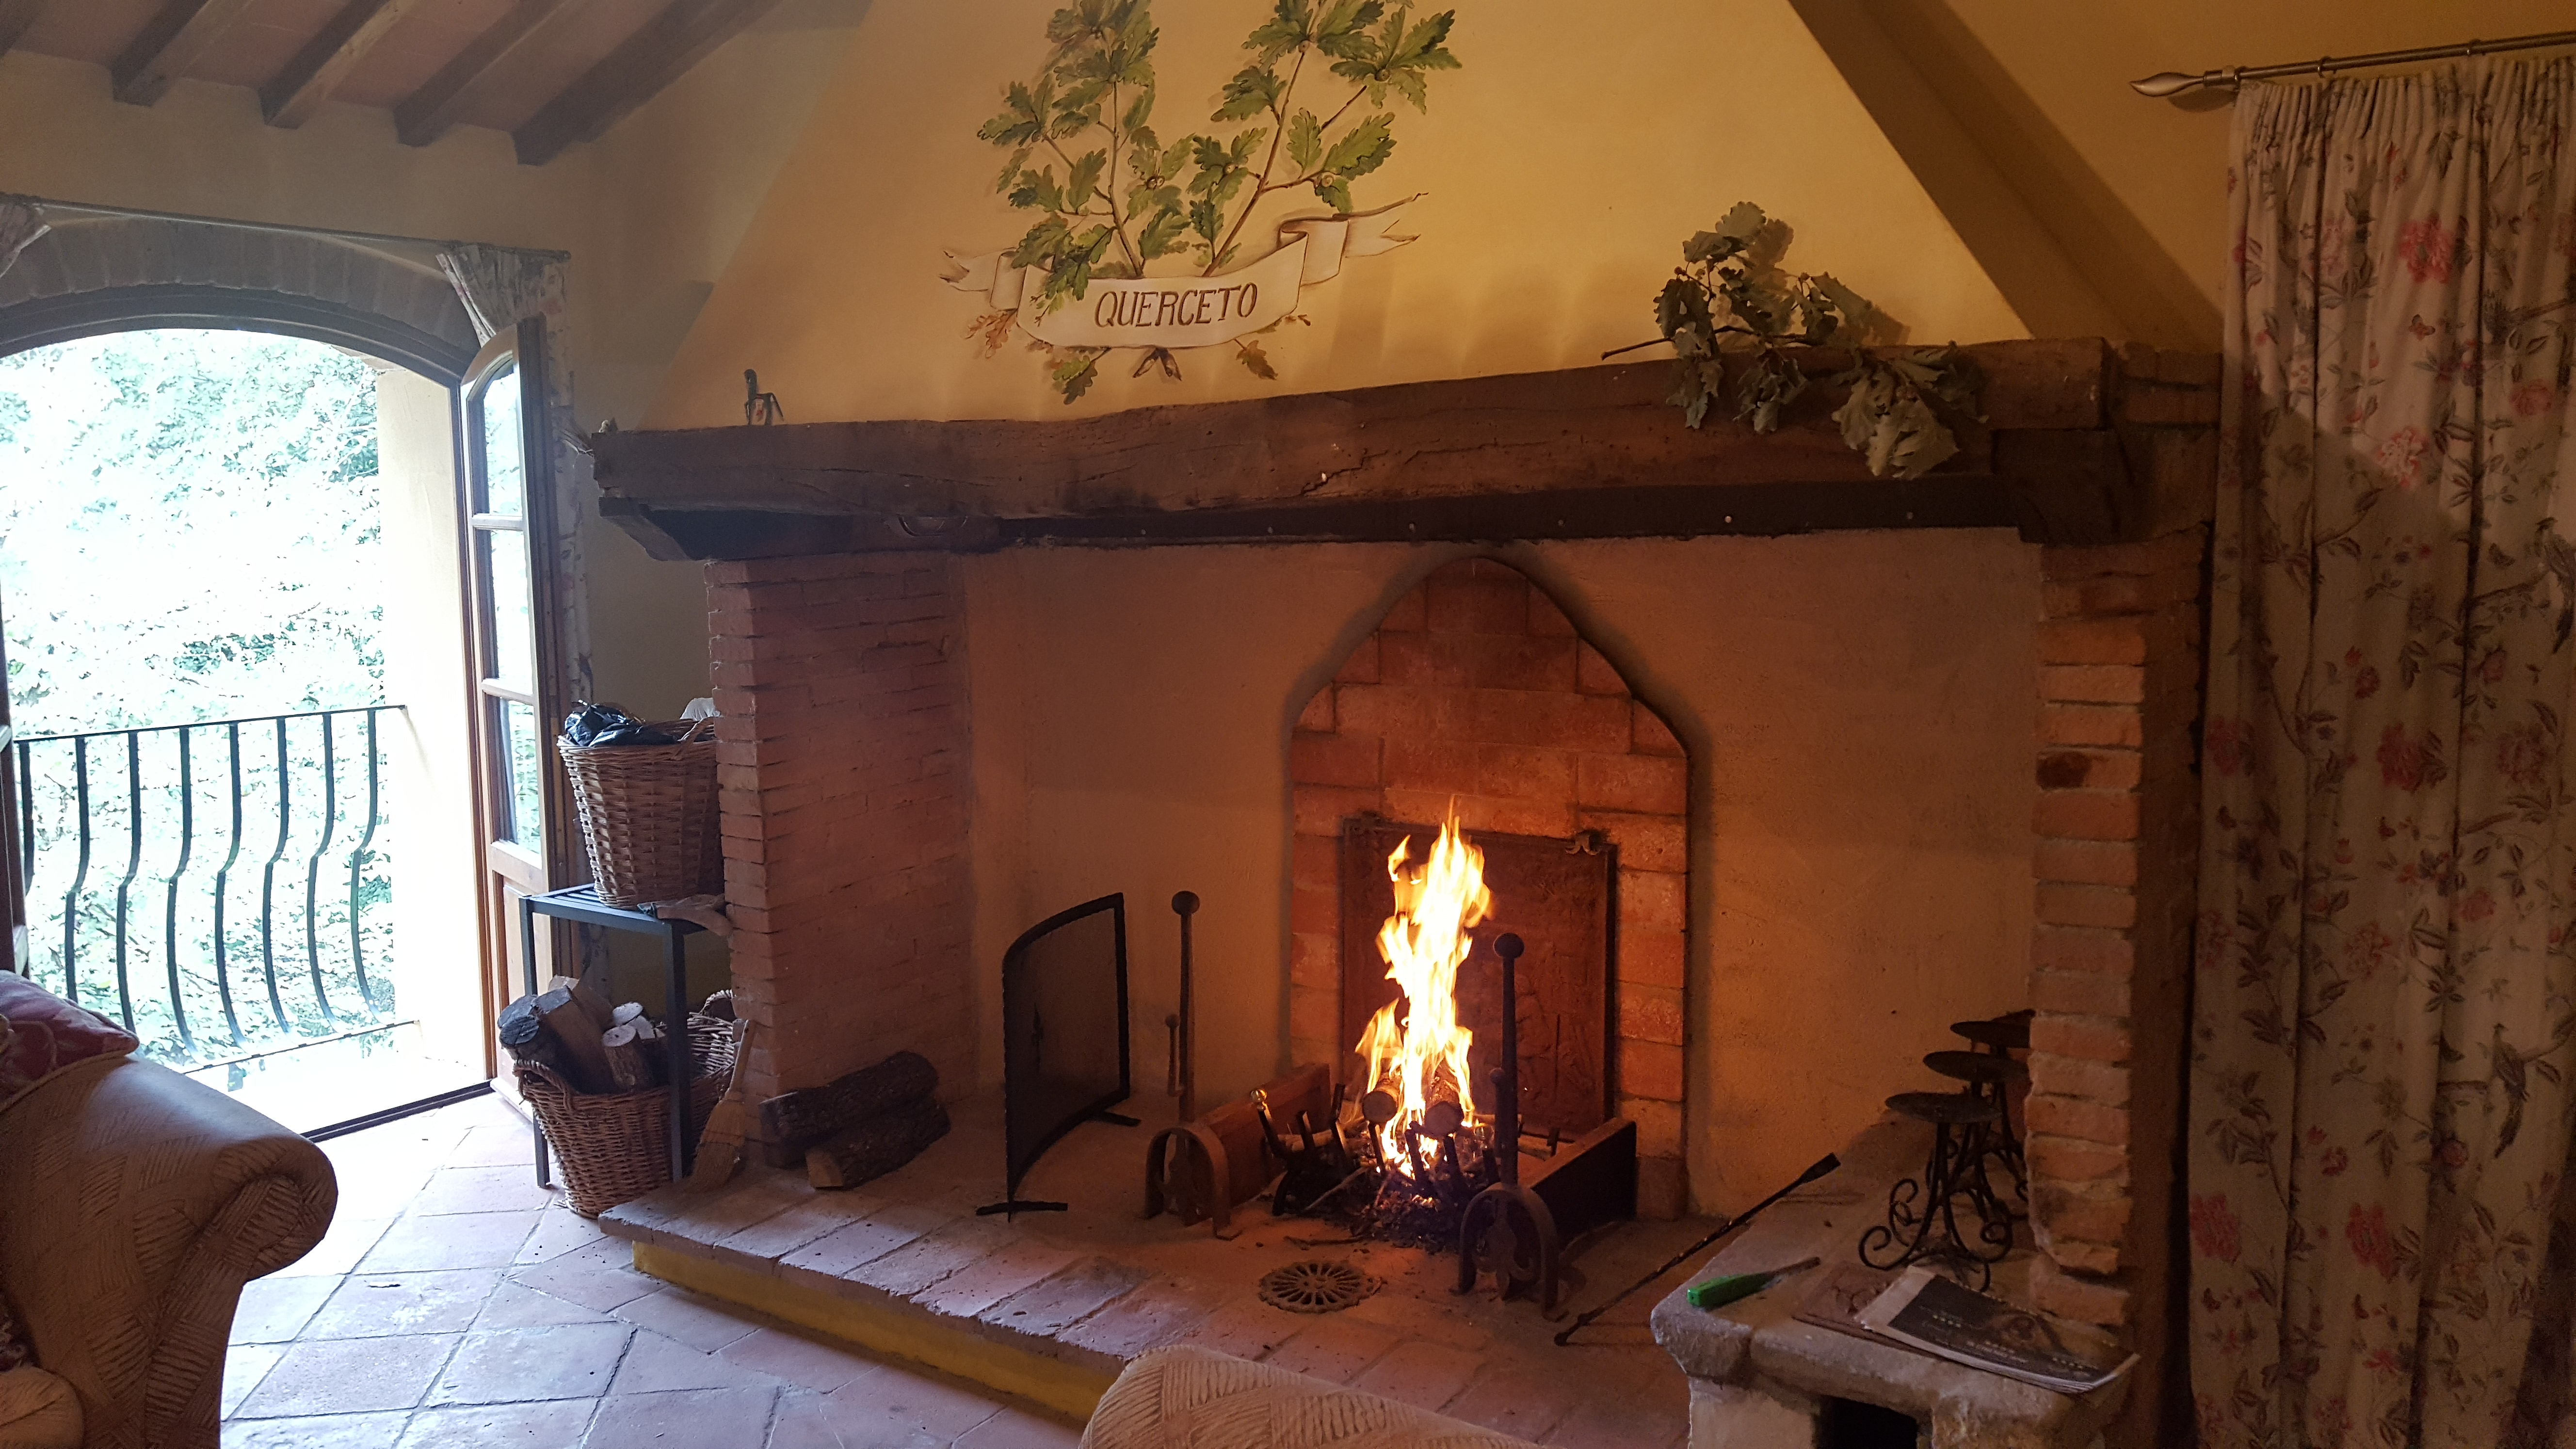 The Log Fire, Sting, A Chinese Conjuring Trick, Fruit and Veg ...